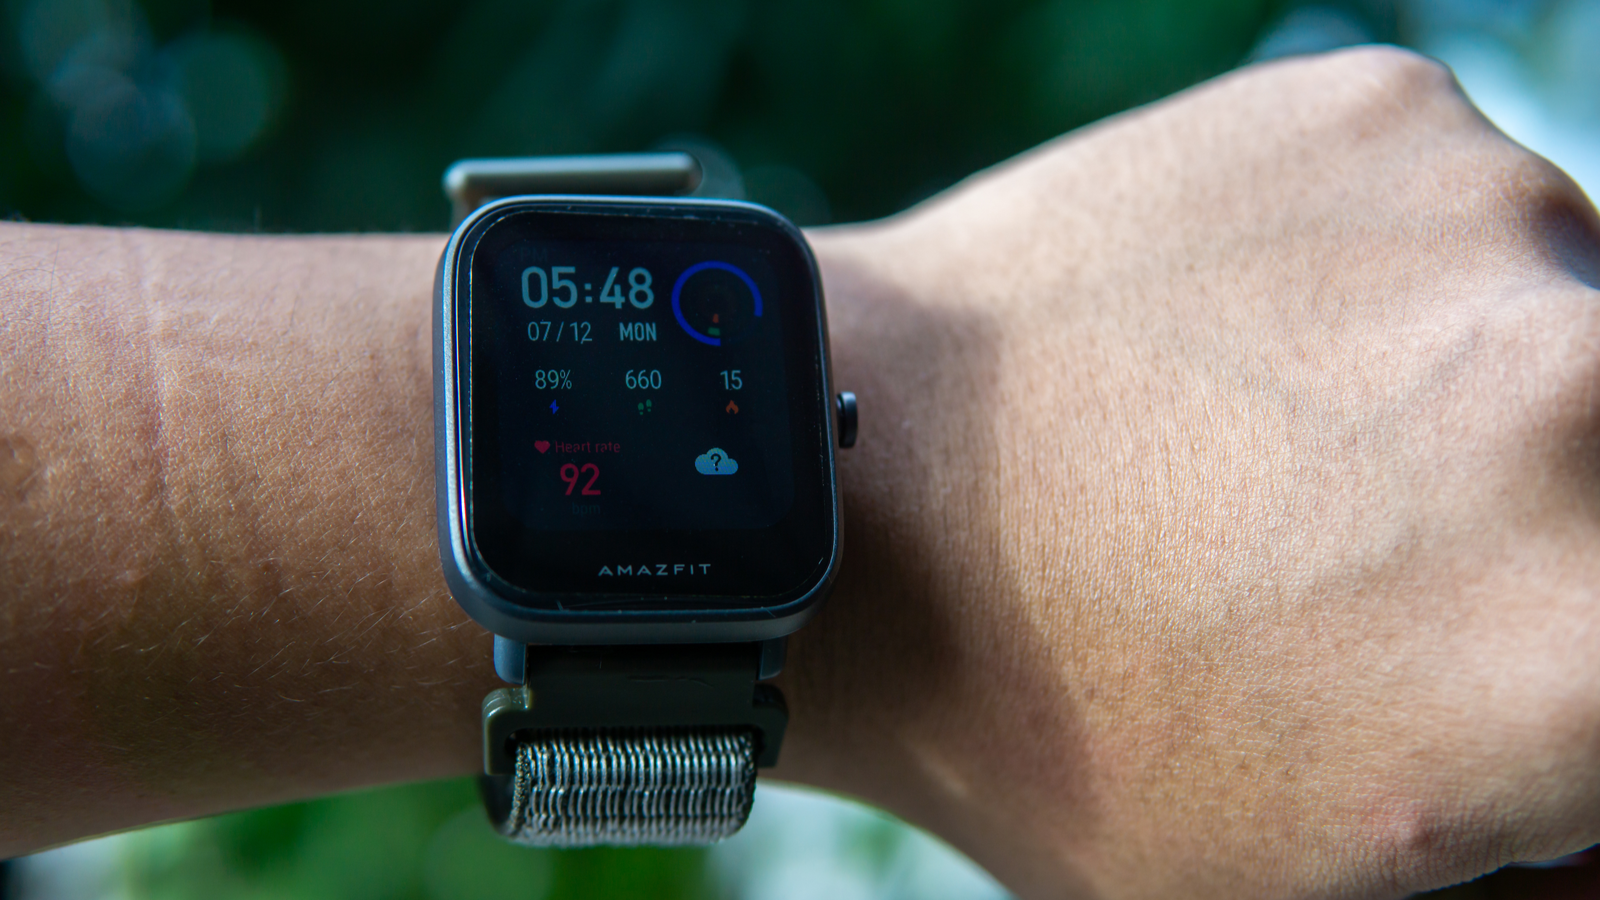 Amazfit smartwatch fitness tracker on wrist showing time and other metrics